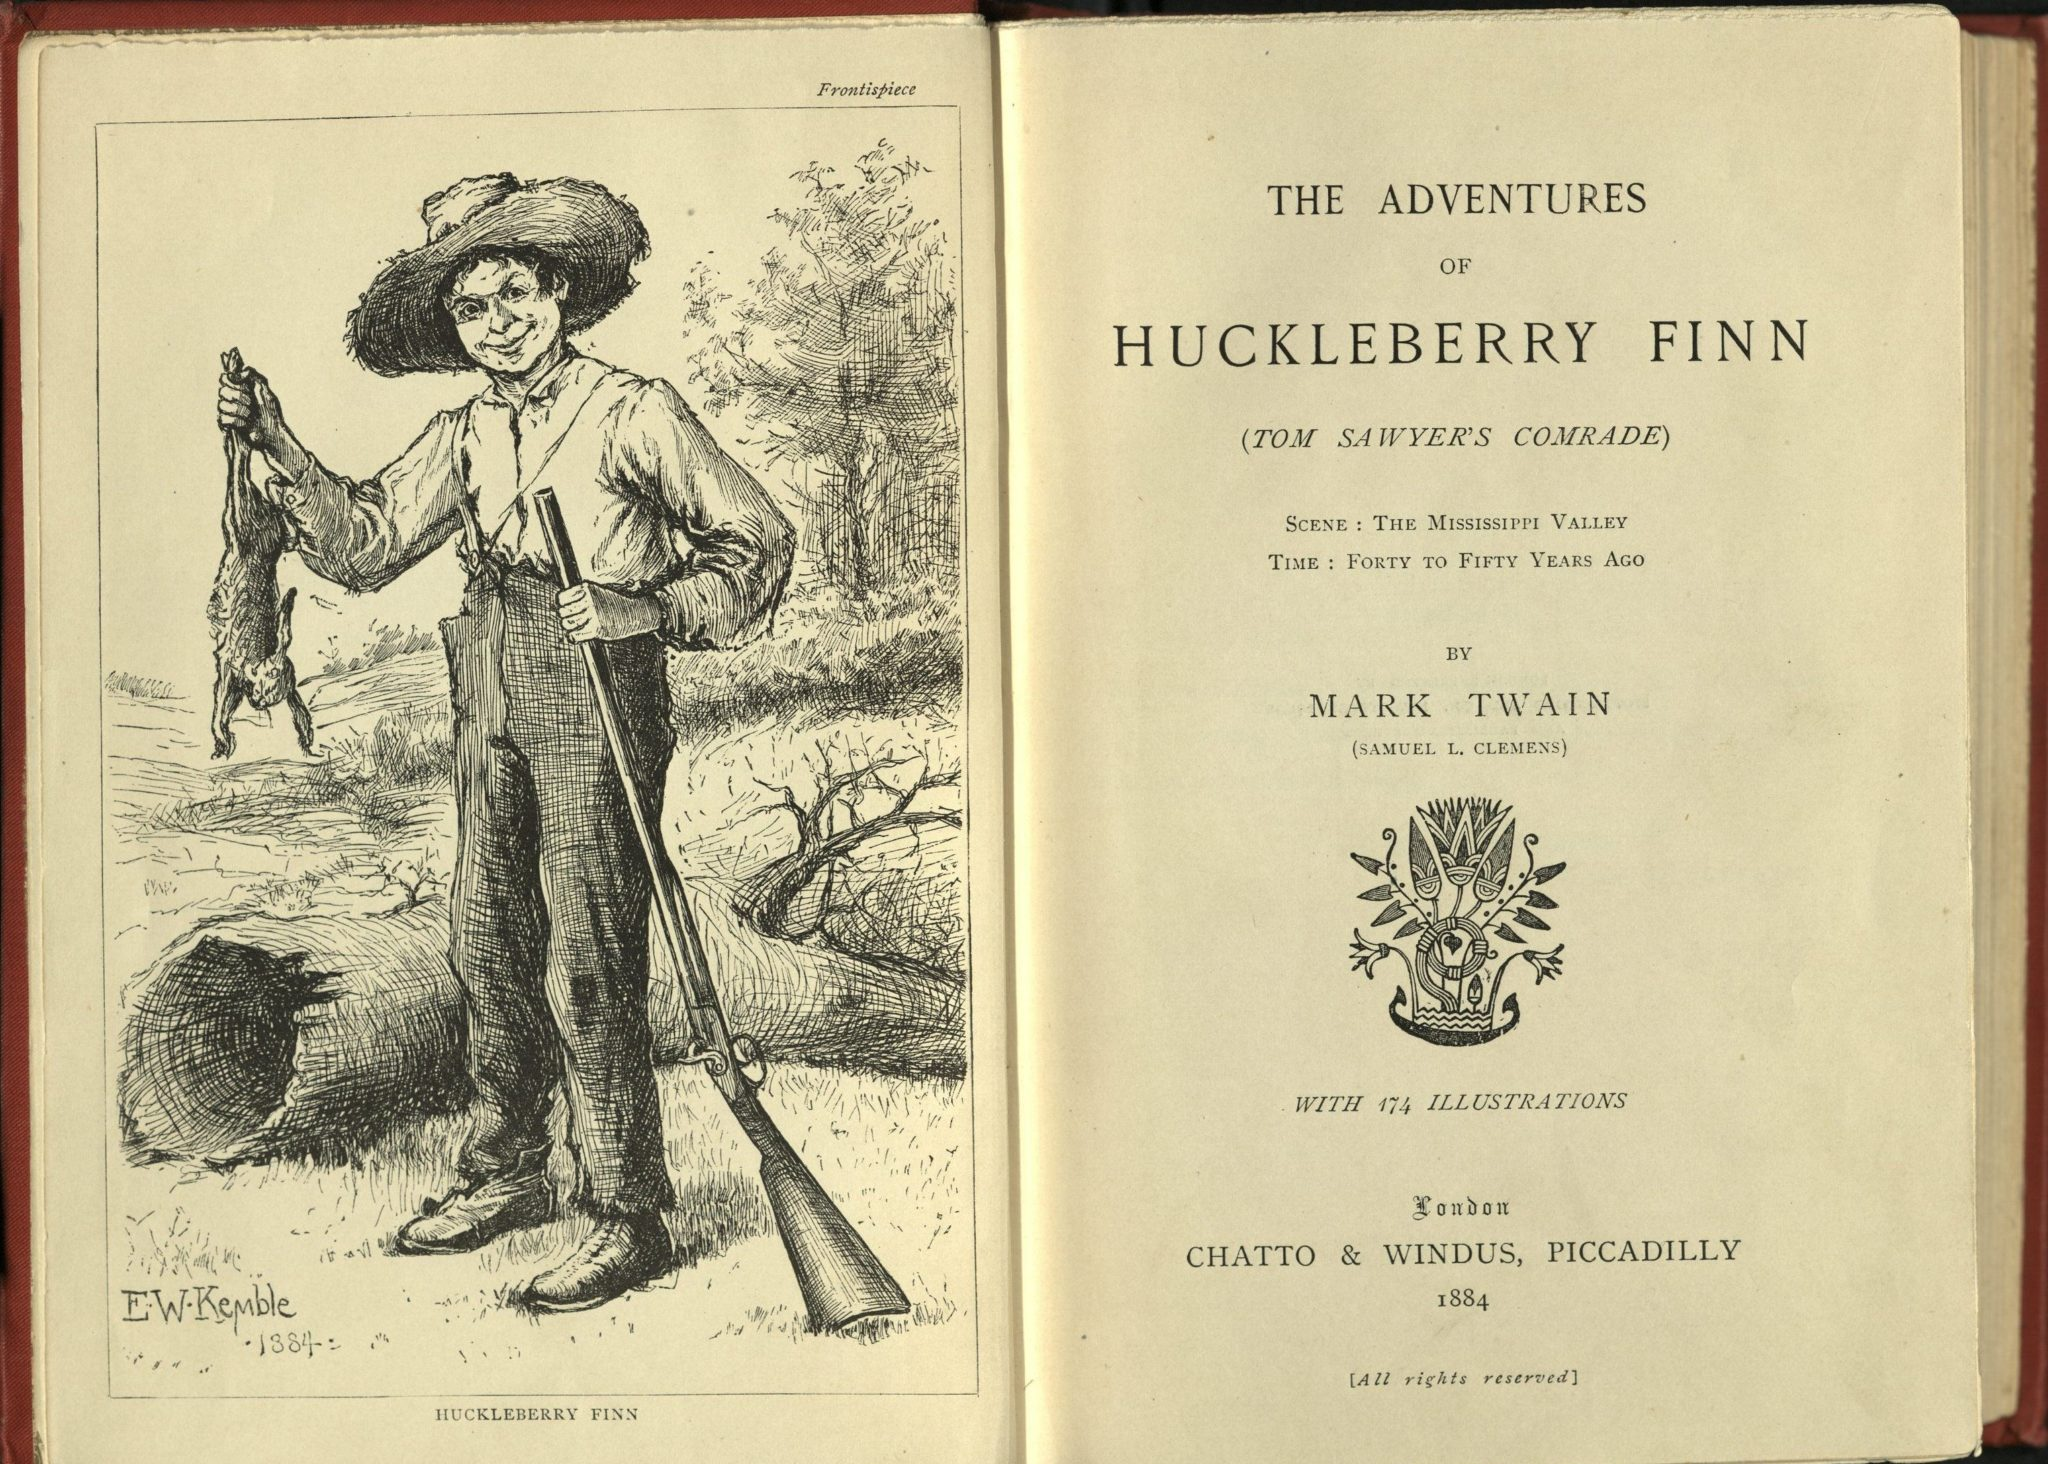 adventures of huckleberry finn essay the adventures of huckleberry  book of the week the adventures of huckleberry finn newsletter adventures of huckleberry finn adventures of finn essay topics